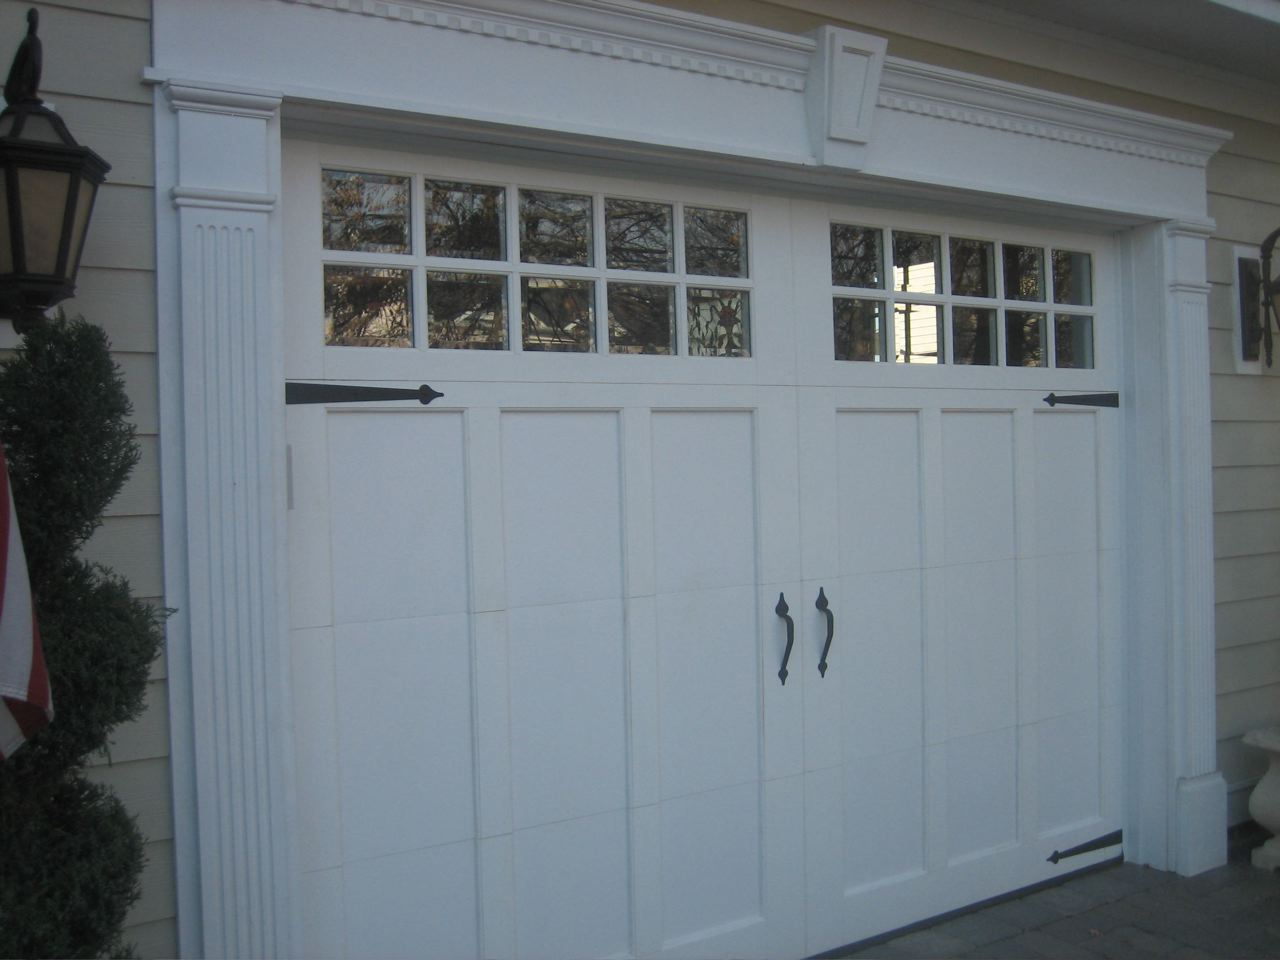 960 #8B8740 Clingerman Doors Custom Wood Garage Doors Clearville PA wallpaper Custom Garage Doors 38351280